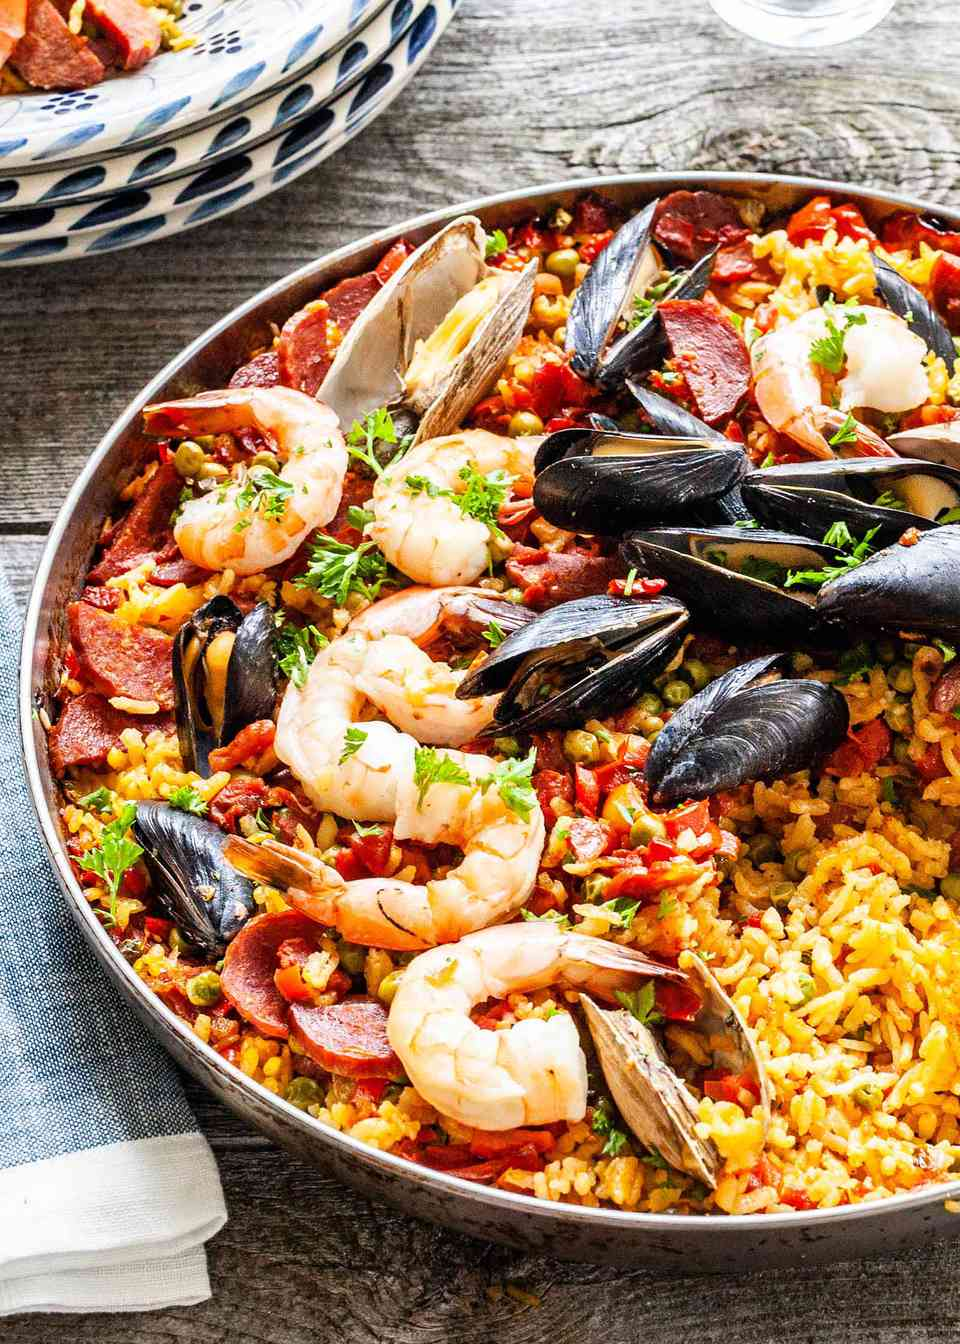 Paella recipe with seafood, cooked on the grill and served in a skillet